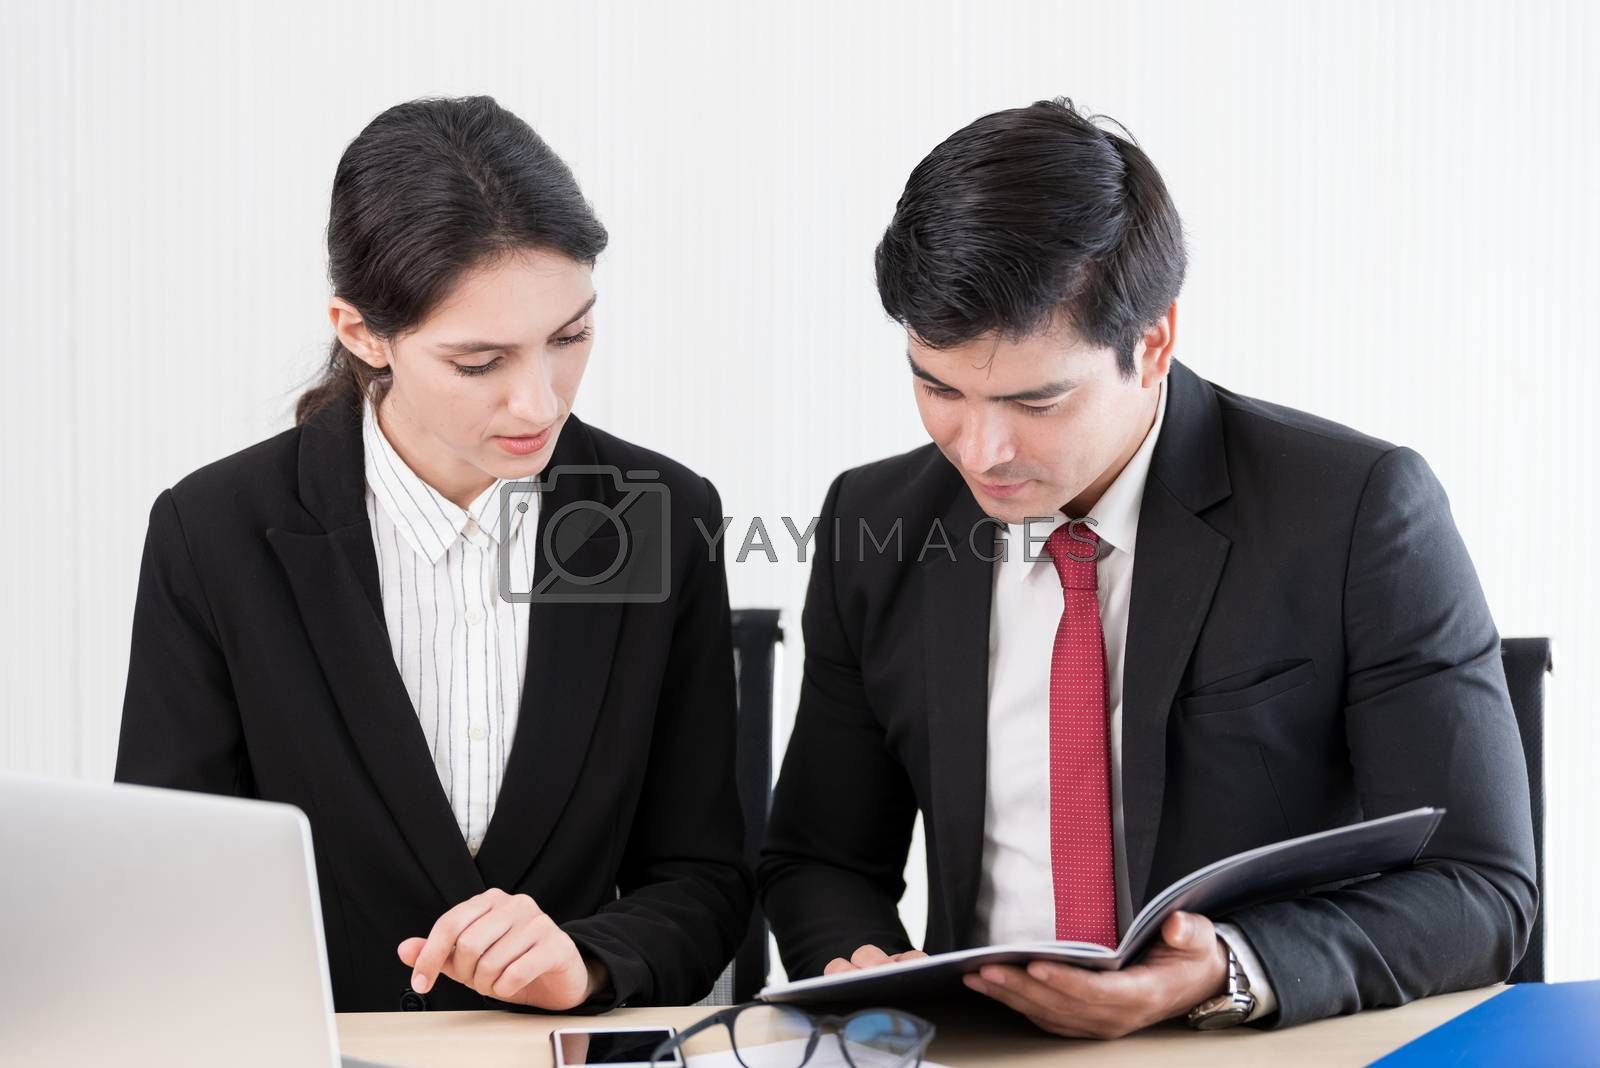 A manager and secretary working together in the office.